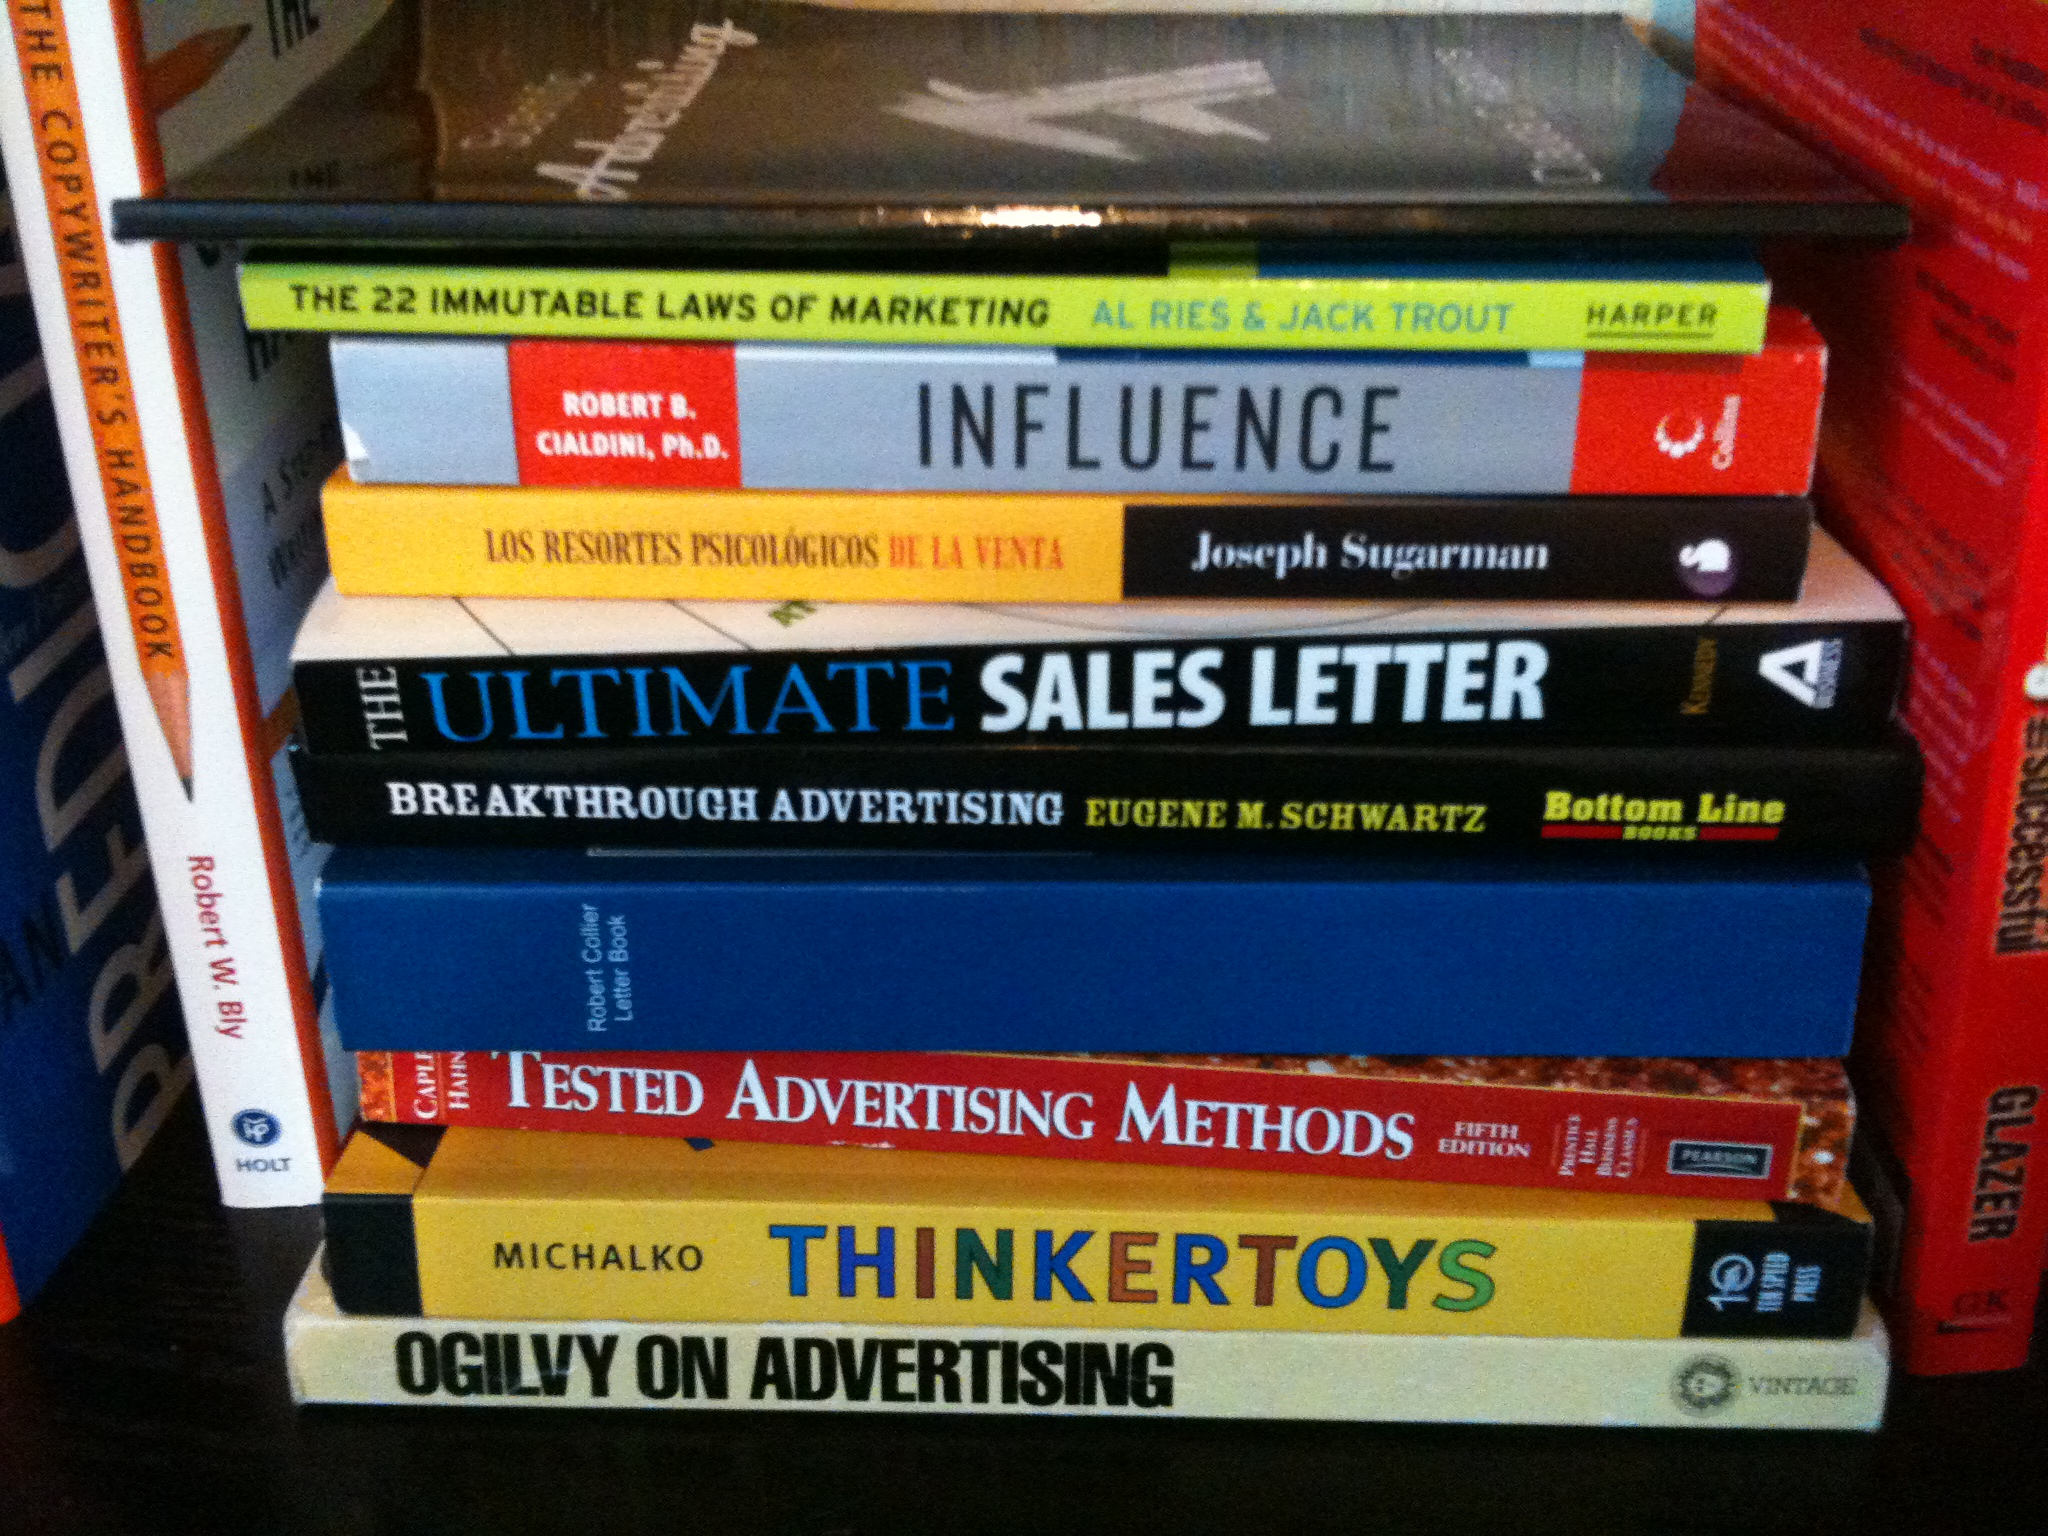 Libros de marketing y publicidad